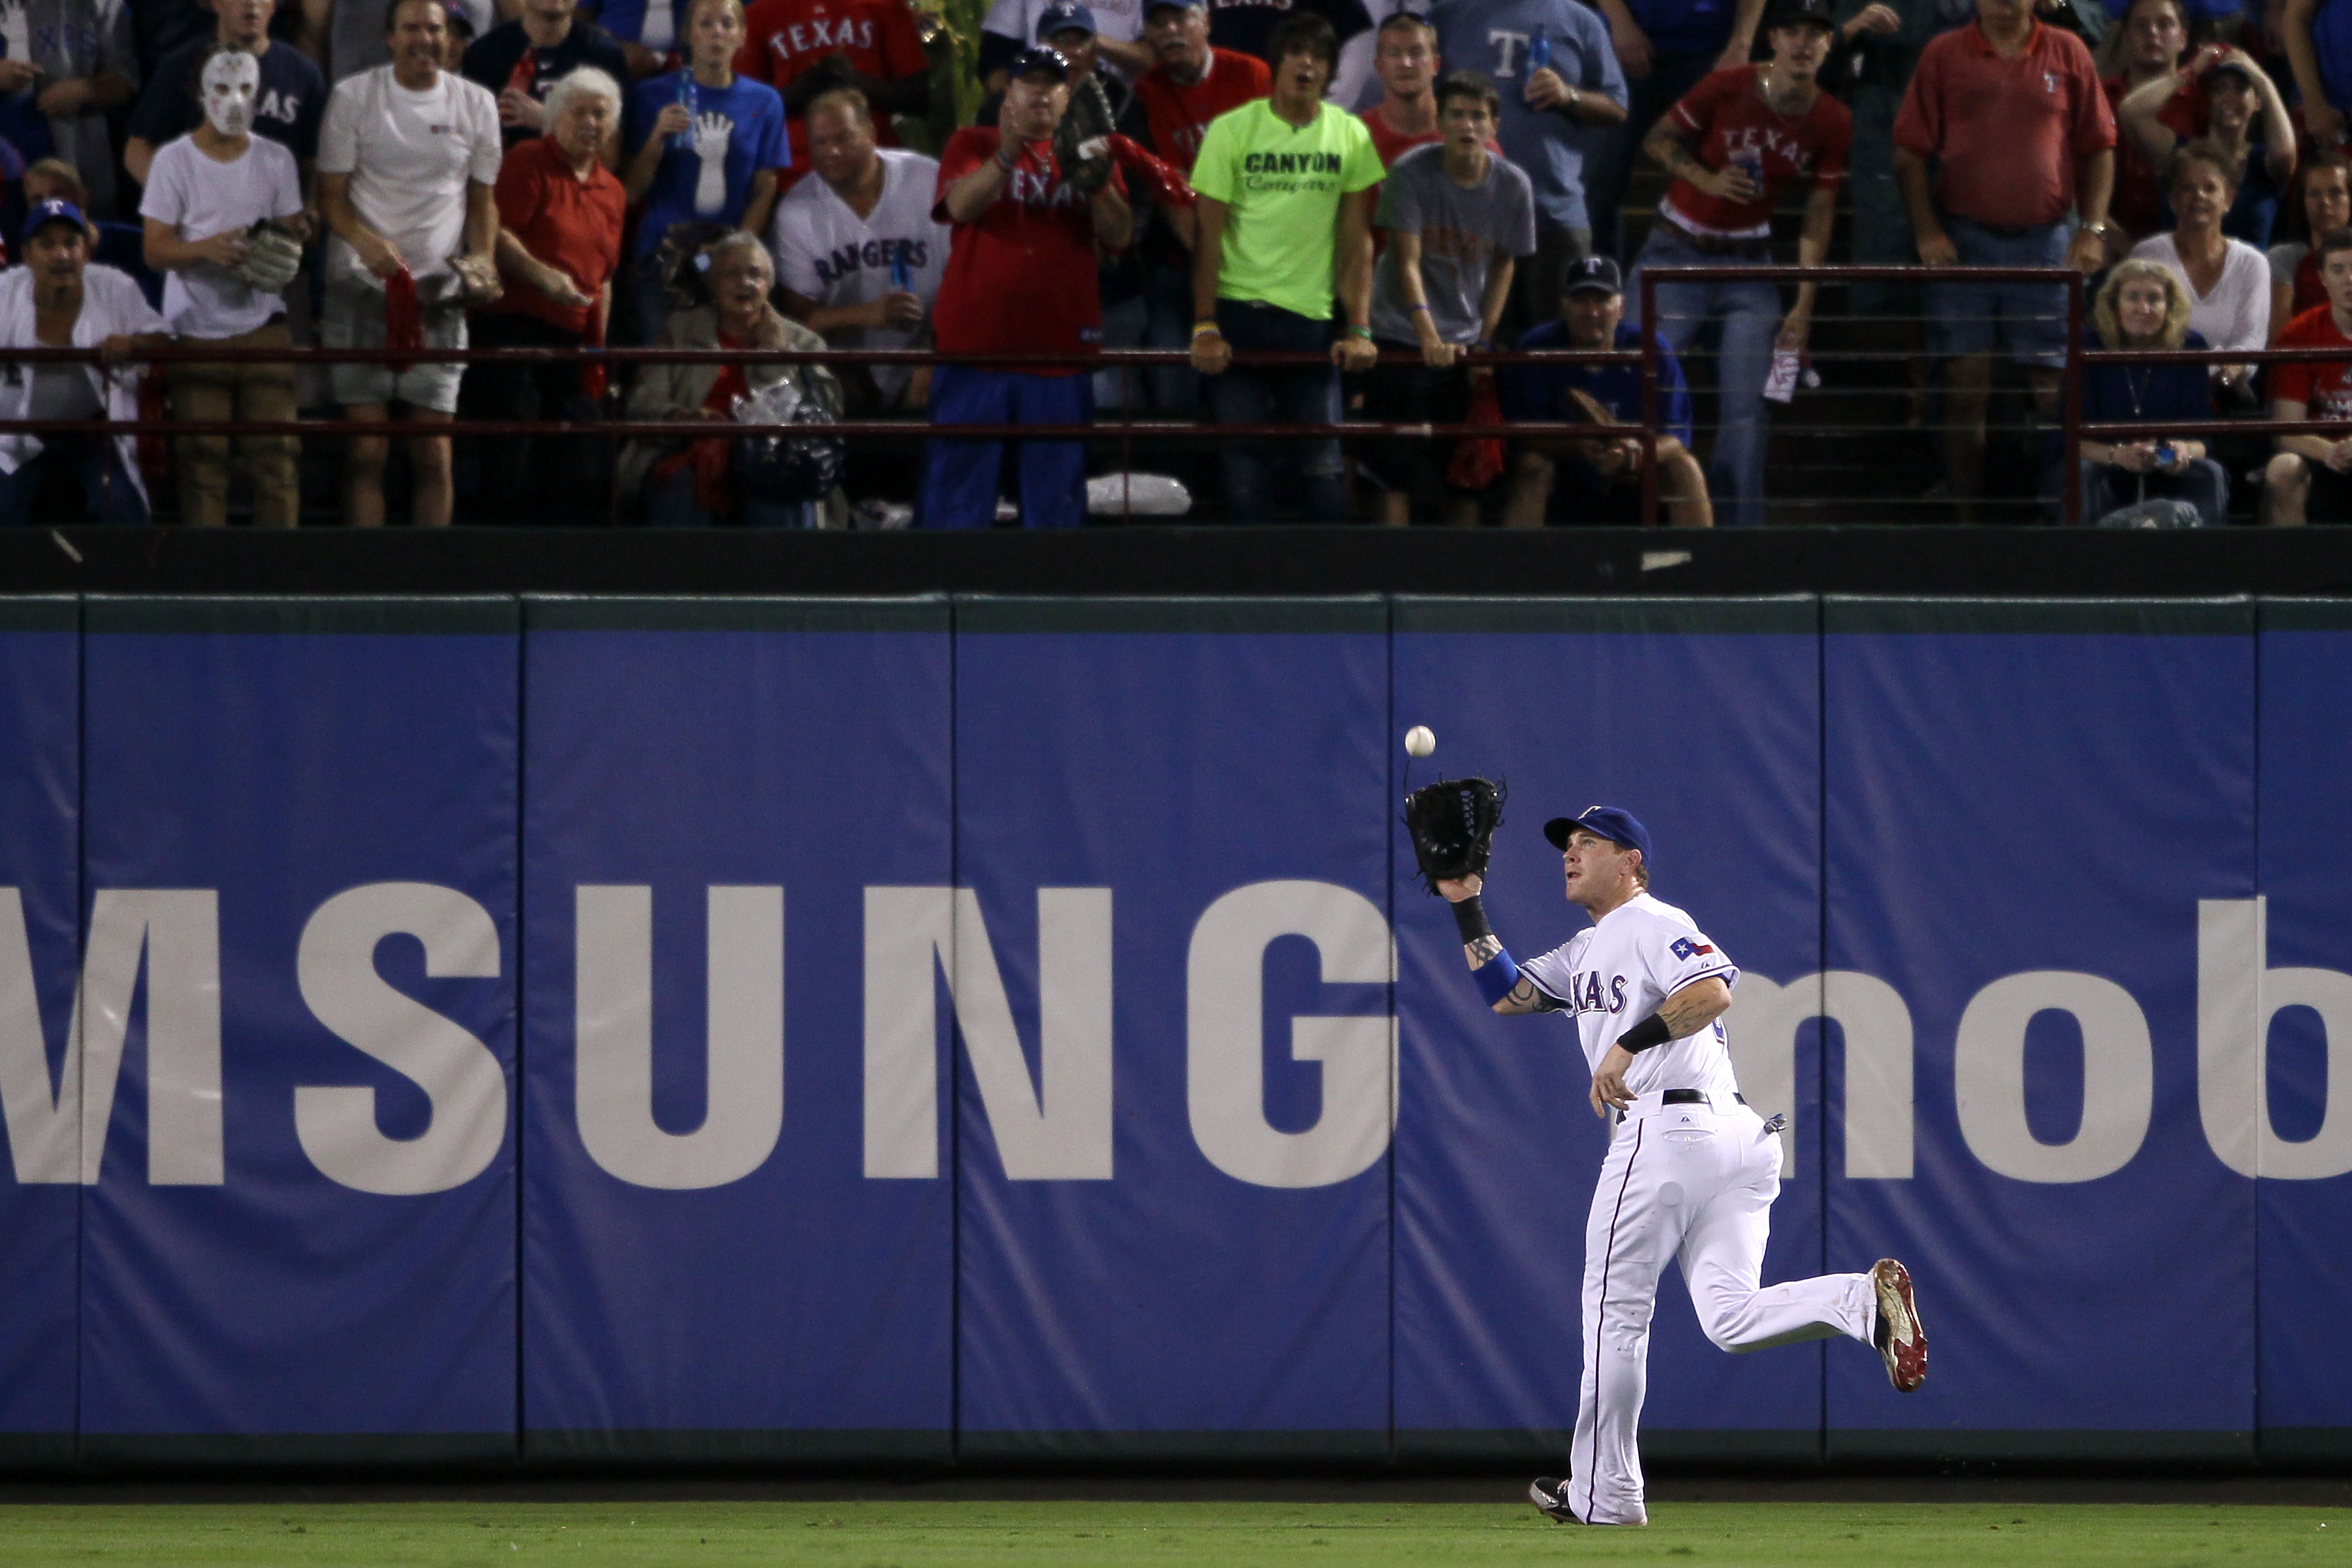 ARLINGTON, TX - OCTOBER 22:  Josh Hamilton #32 of the Texas Rangers makes a catch in the outfield against the New York Yankees in Game Six of the ALCS during the 2010 MLB Playoffs at Rangers Ballpark in Arlington on October 22, 2010 in Arlington, Texas.